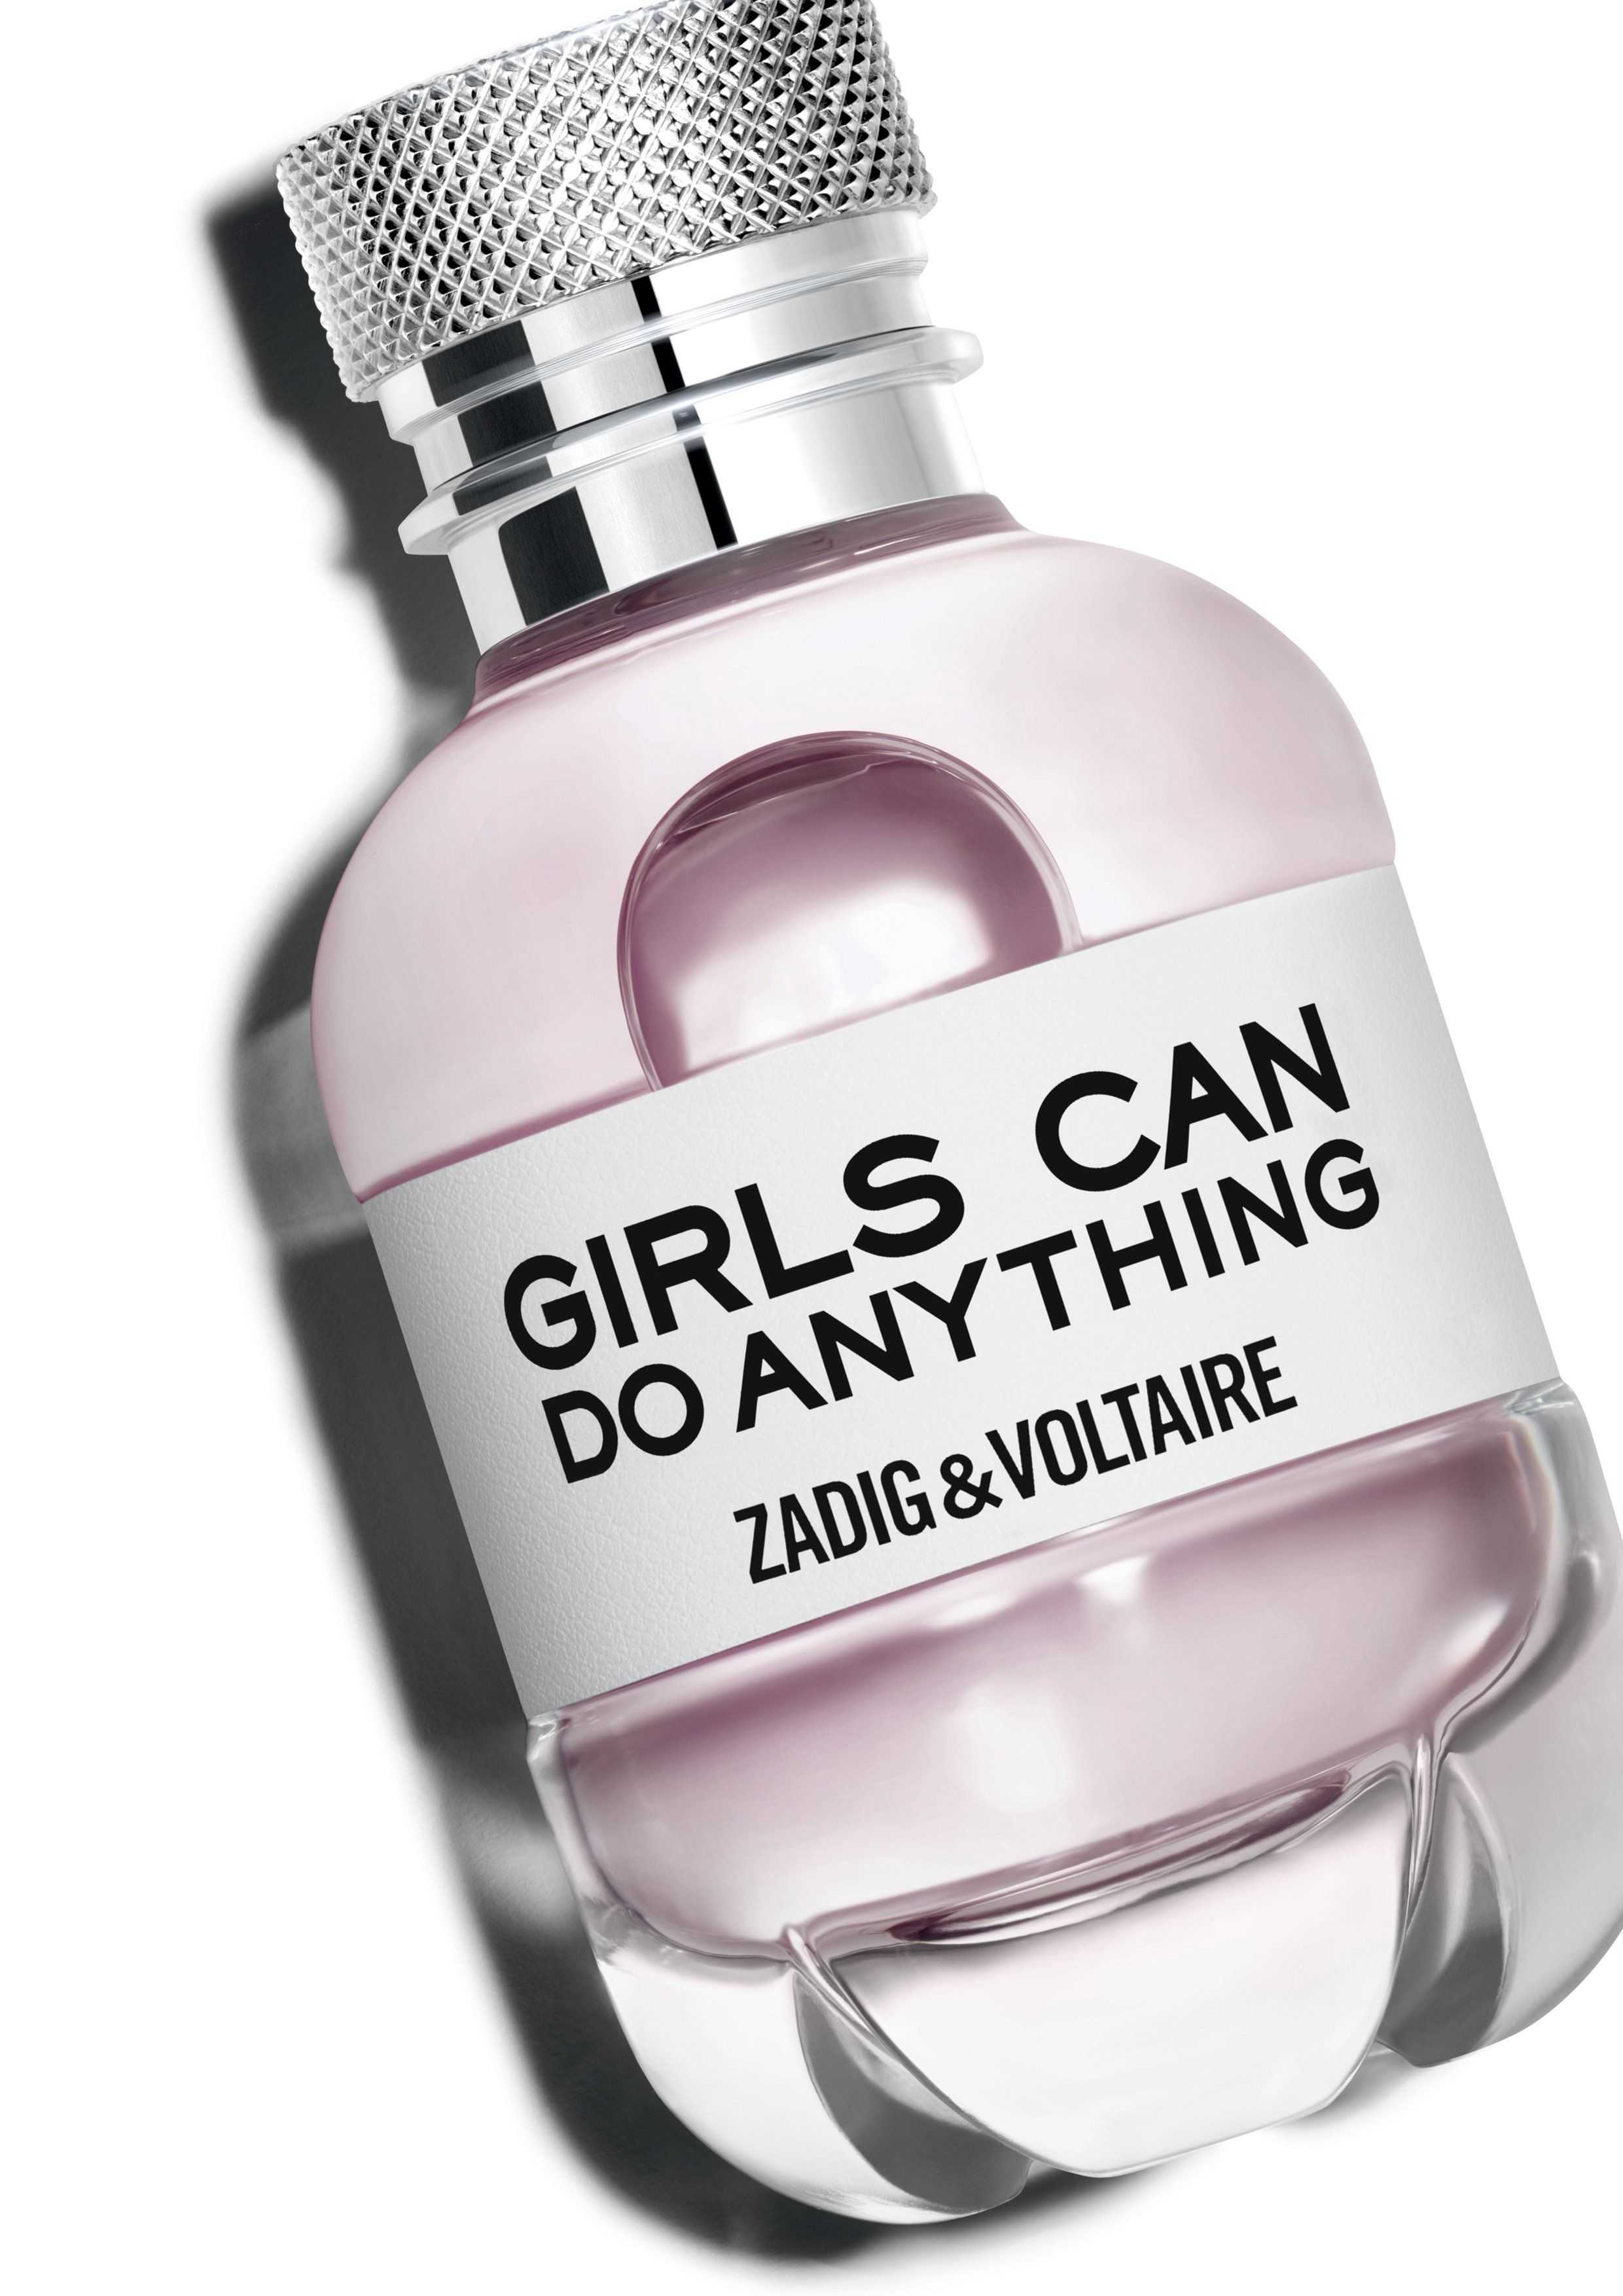 Zadig Voltaire Fragrances Girls Can Do Anything Perfume Store Perfume Fragrances Perfume